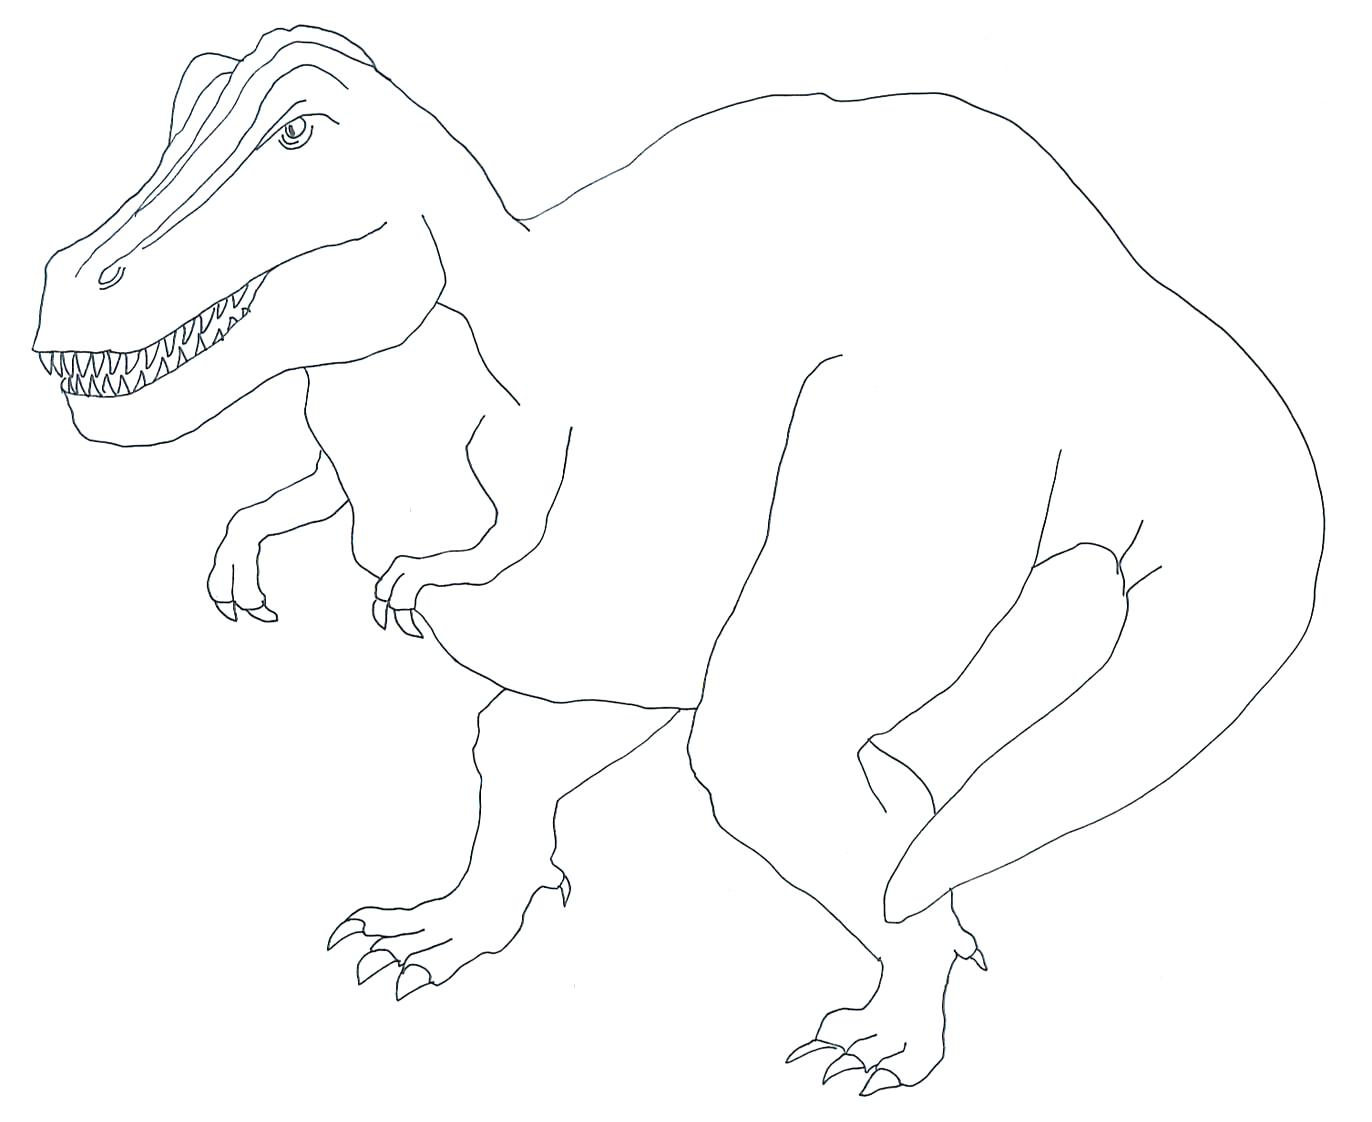 1372x1122 Lego Jurassic World Indominus Rex Coloring Pages Innovative Park T